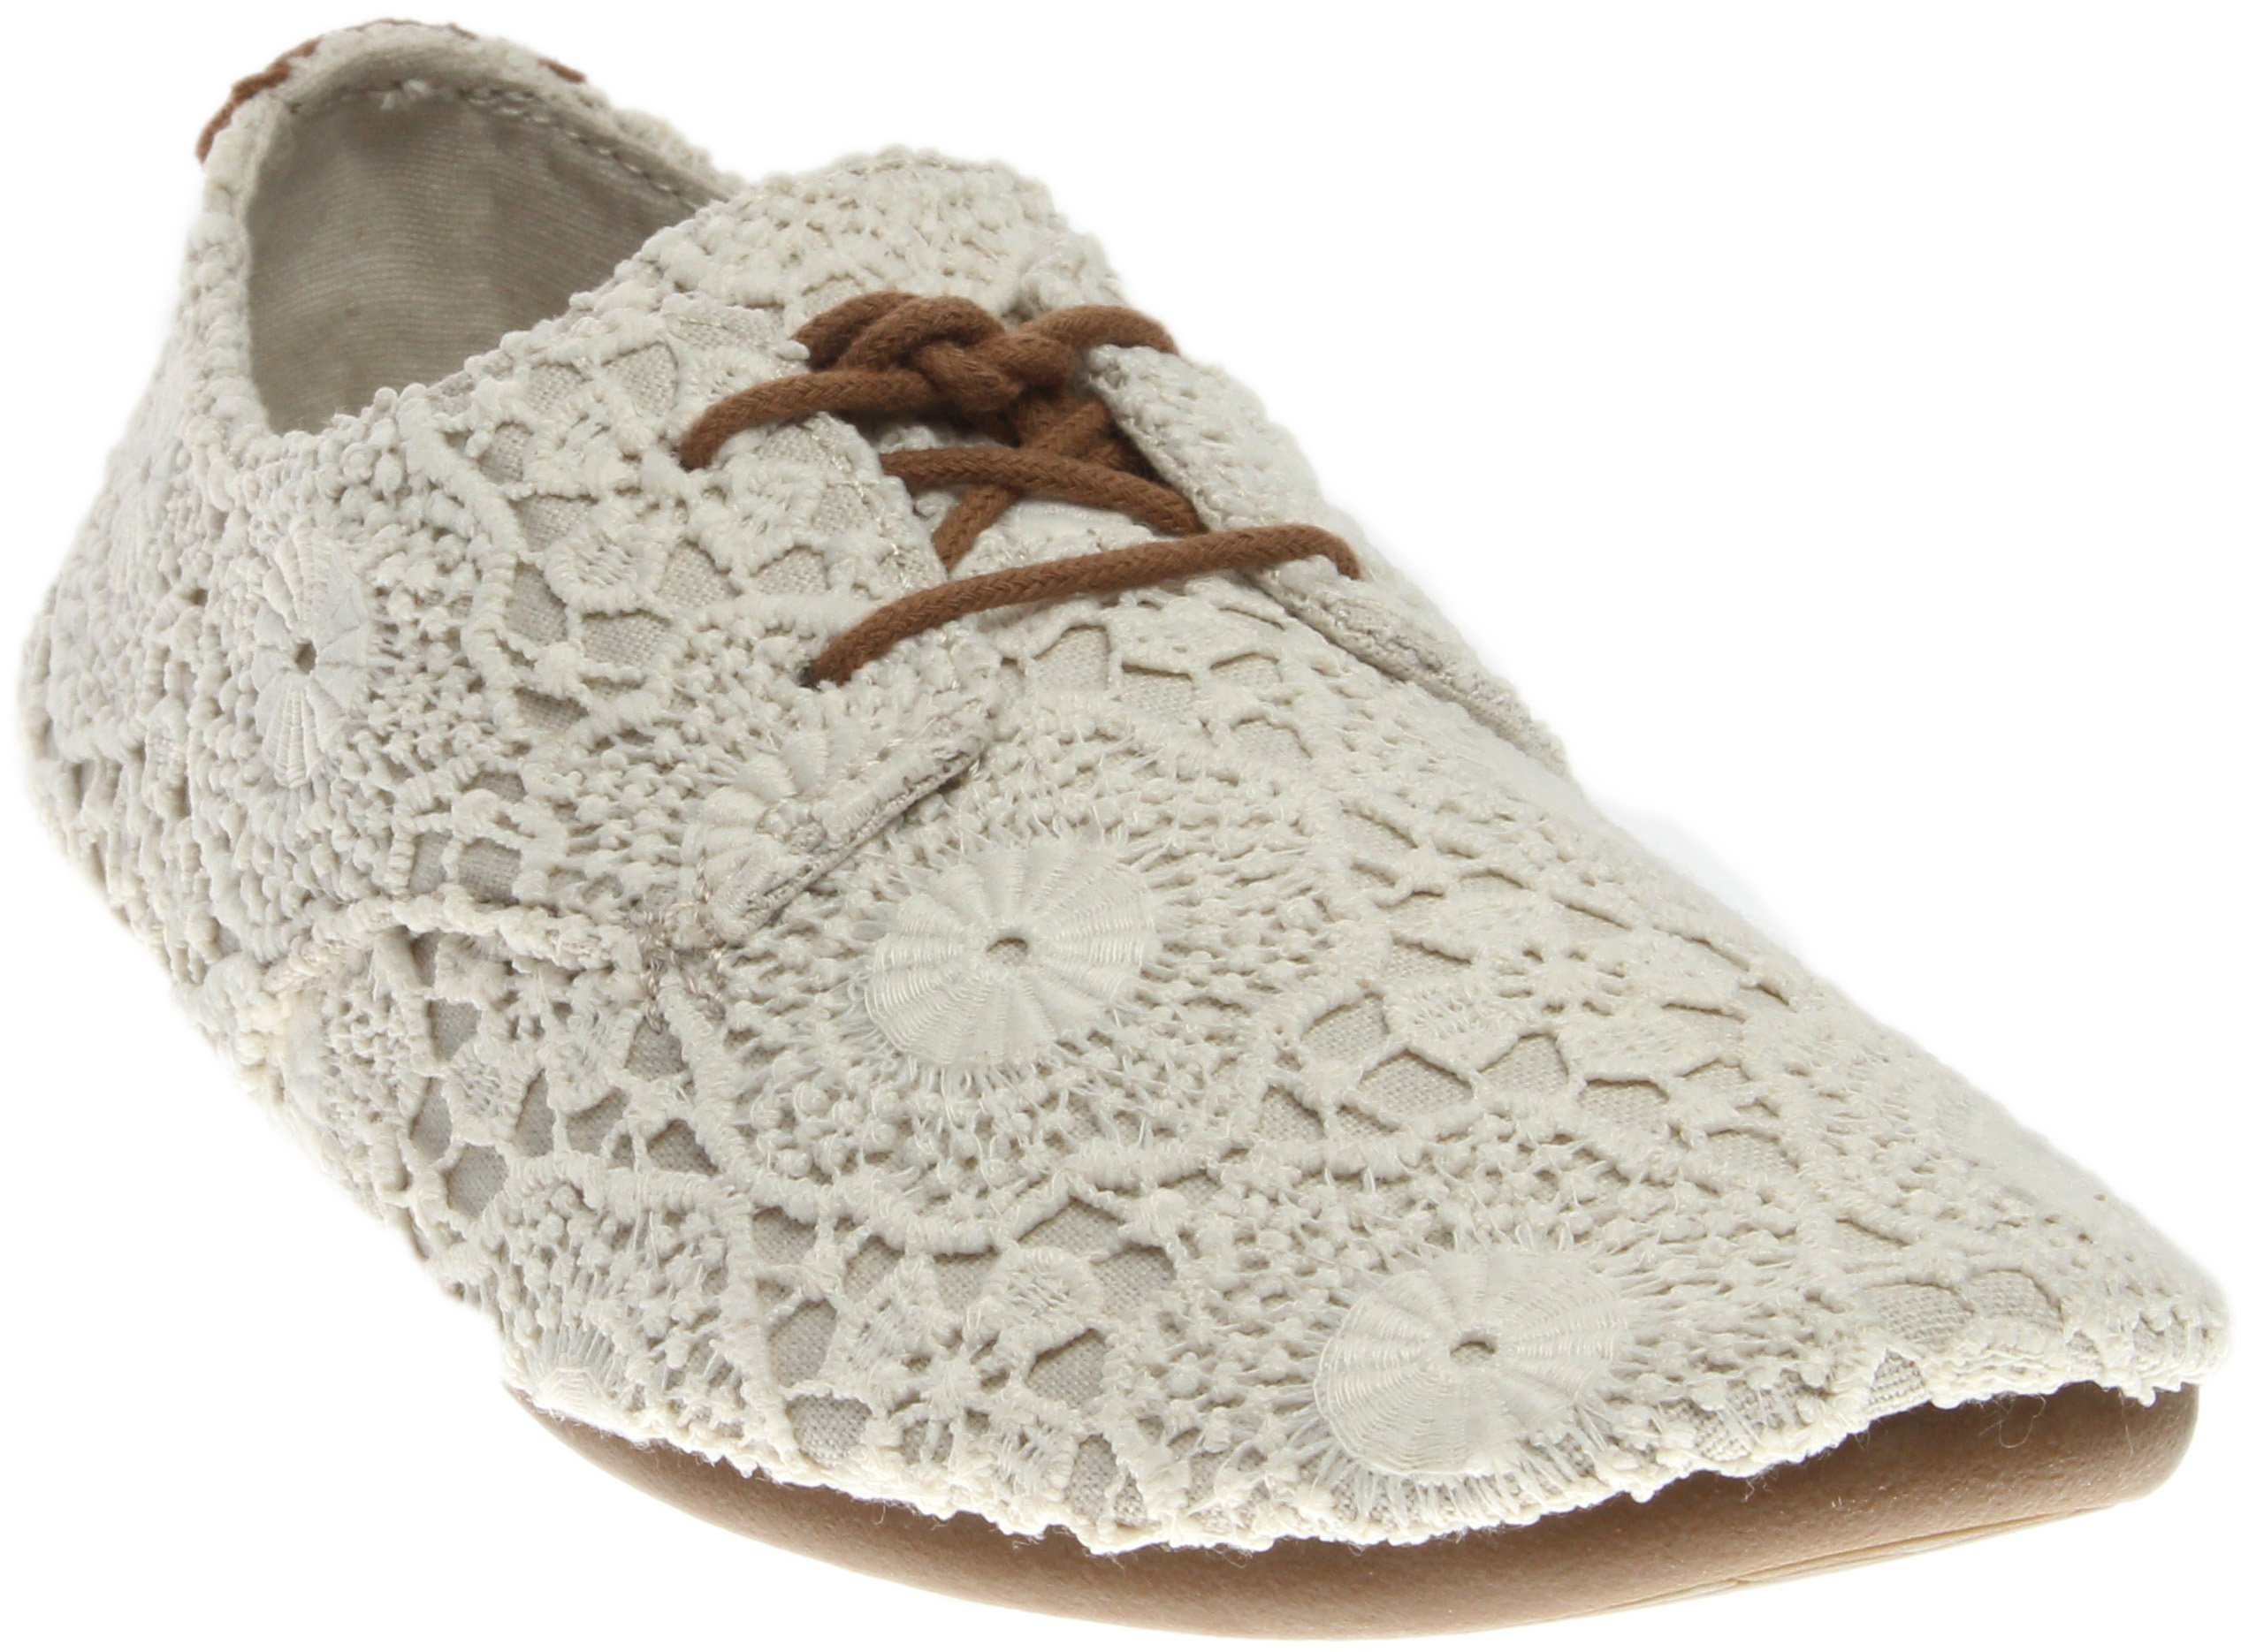 Sanuk Women's Bianca Crochet White/Oatmeal Oxford